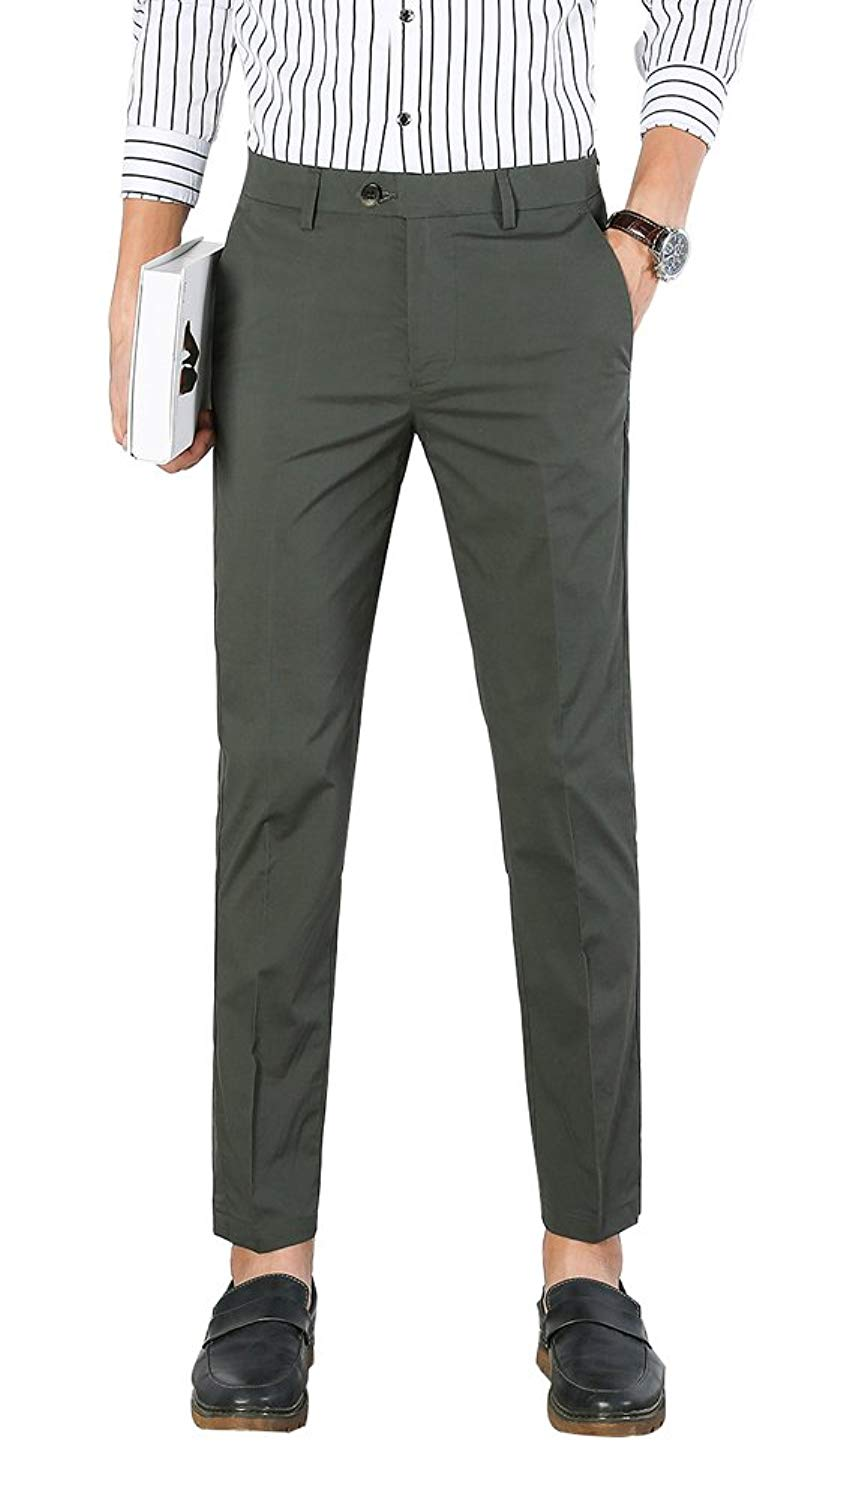 6412dec33 Get Quotations · Plaid&Plain Men's Dress Pants Slim Fit Cropped Pants Mens  Tapered Dress Pants